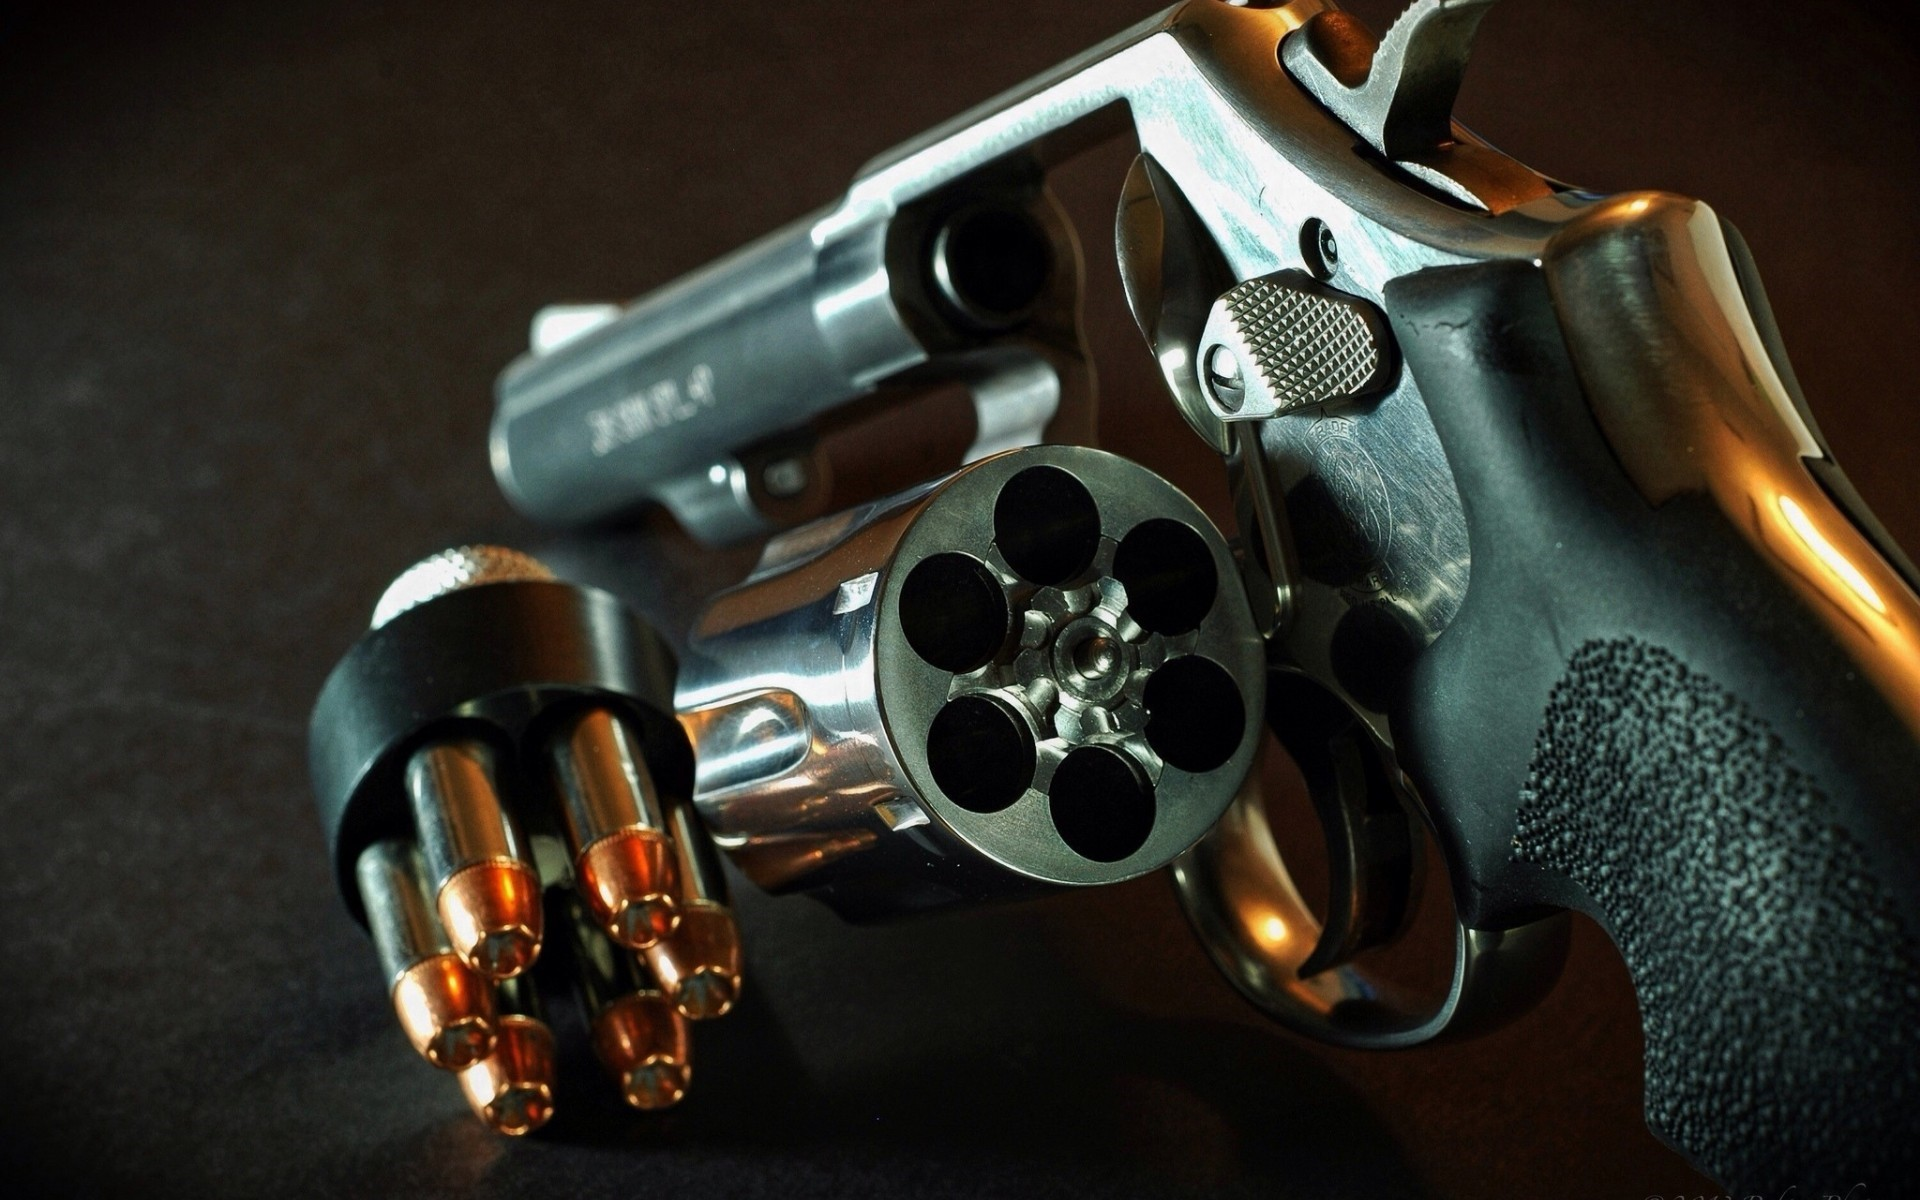 3 Hour Illinois Concealed Carry renewal course